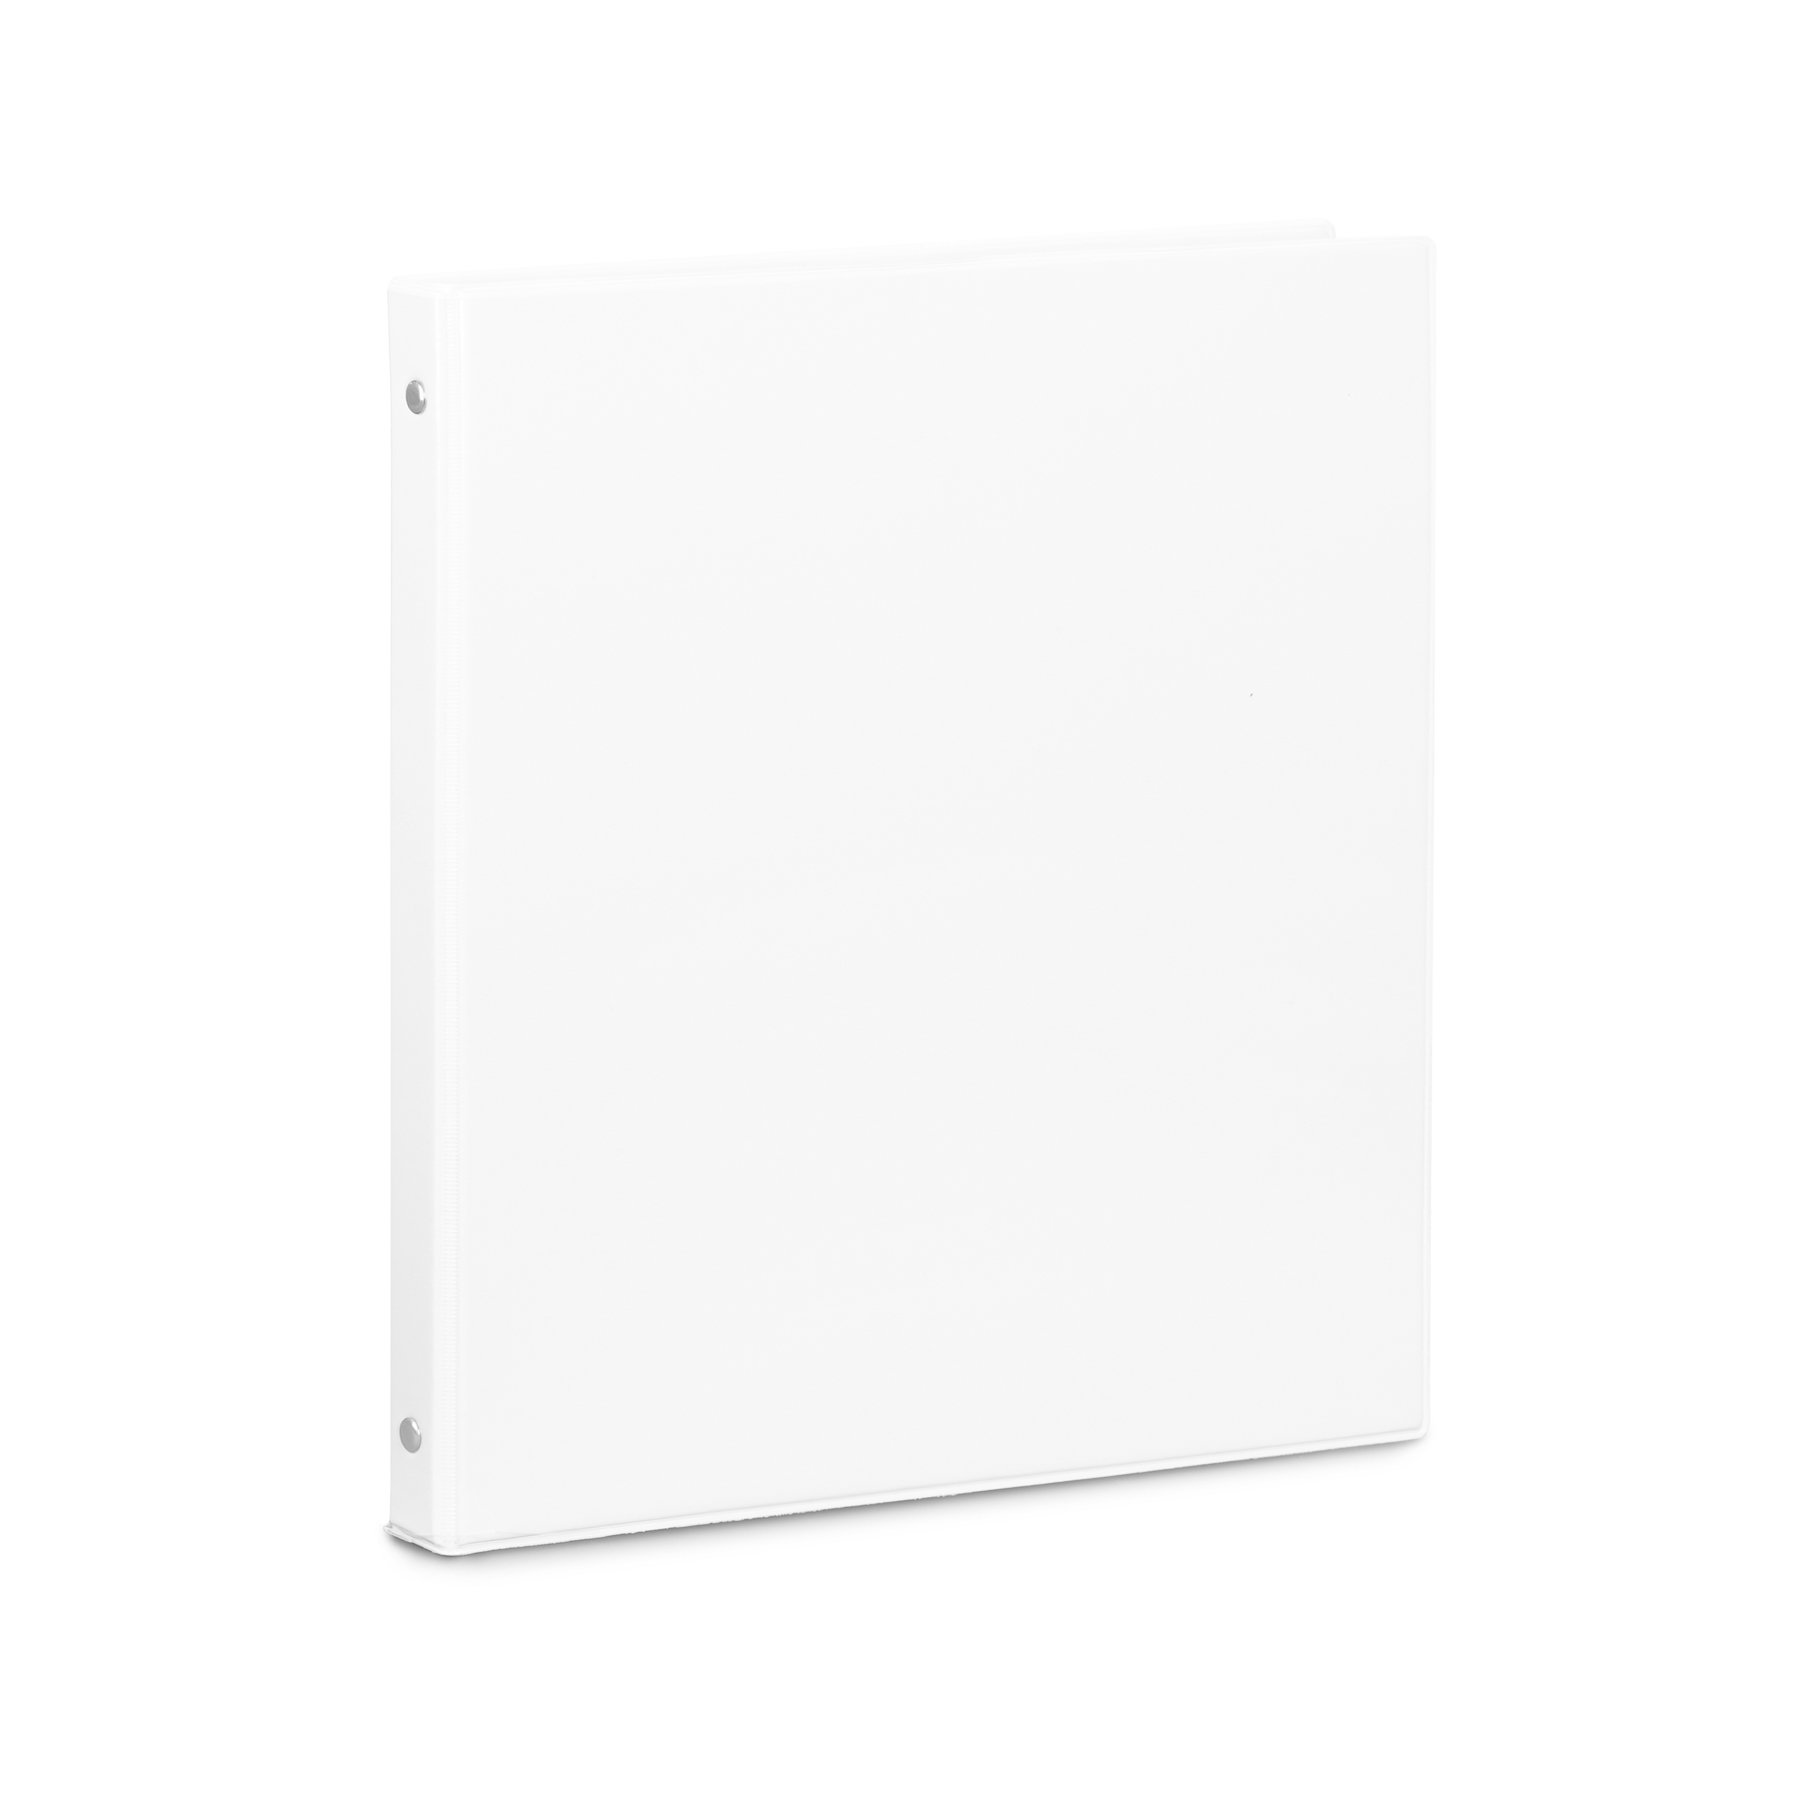 Blue Summit Supplies 10 Pack of 1/2 inch 3-Ring Economy Binders, White, Bulk Clear Cover Binders for Home, Office, and School, 8 1/2 inch x 11 inch Paper, Value Pack by Blue Summit Supplies (Image #3)